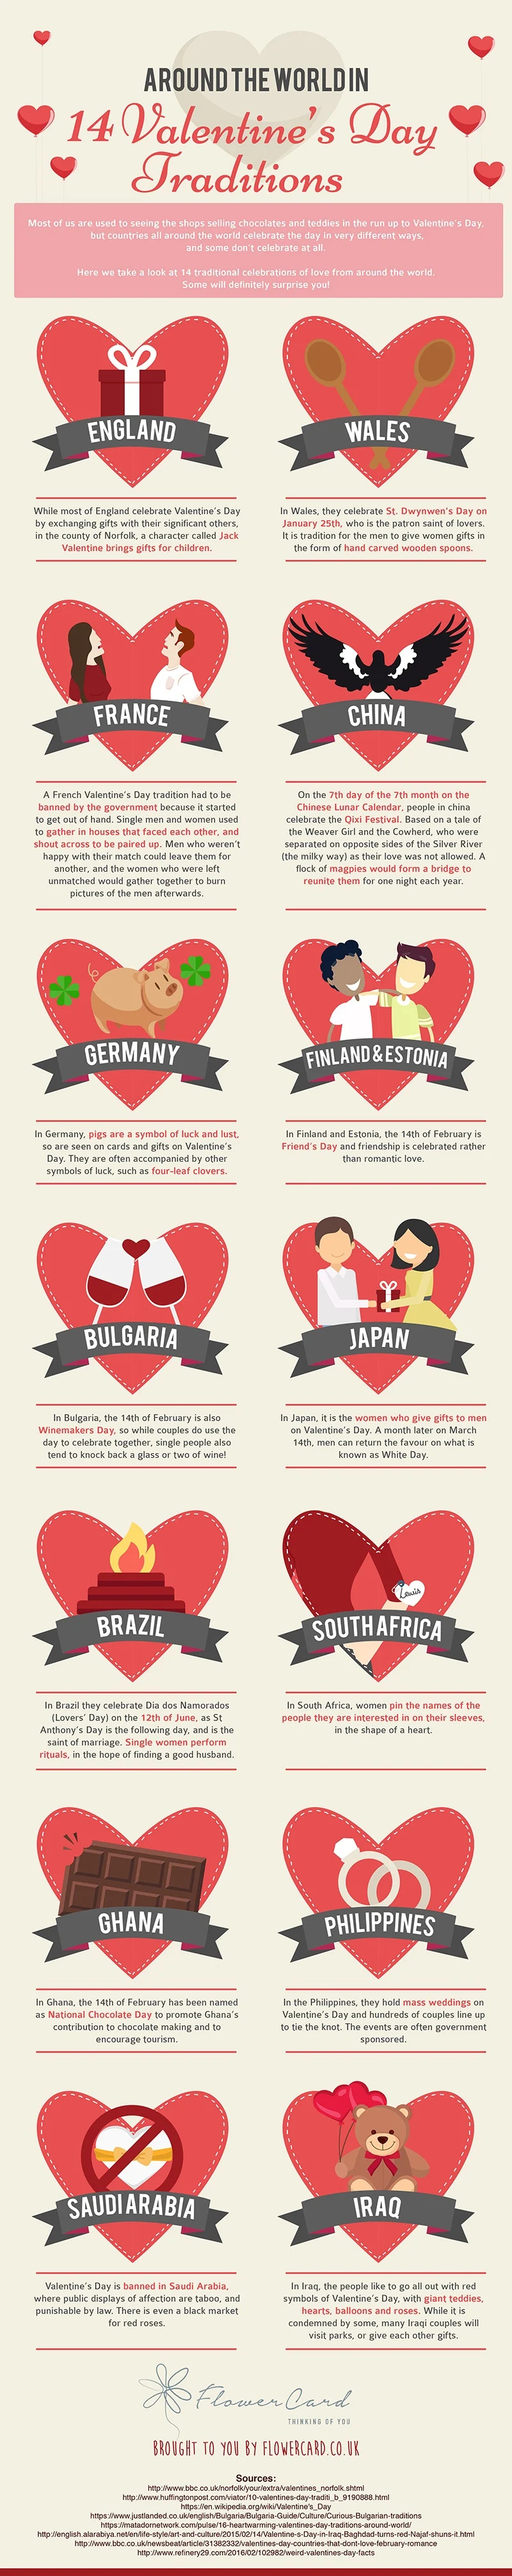 Valentine's Day Tradition From Around the World